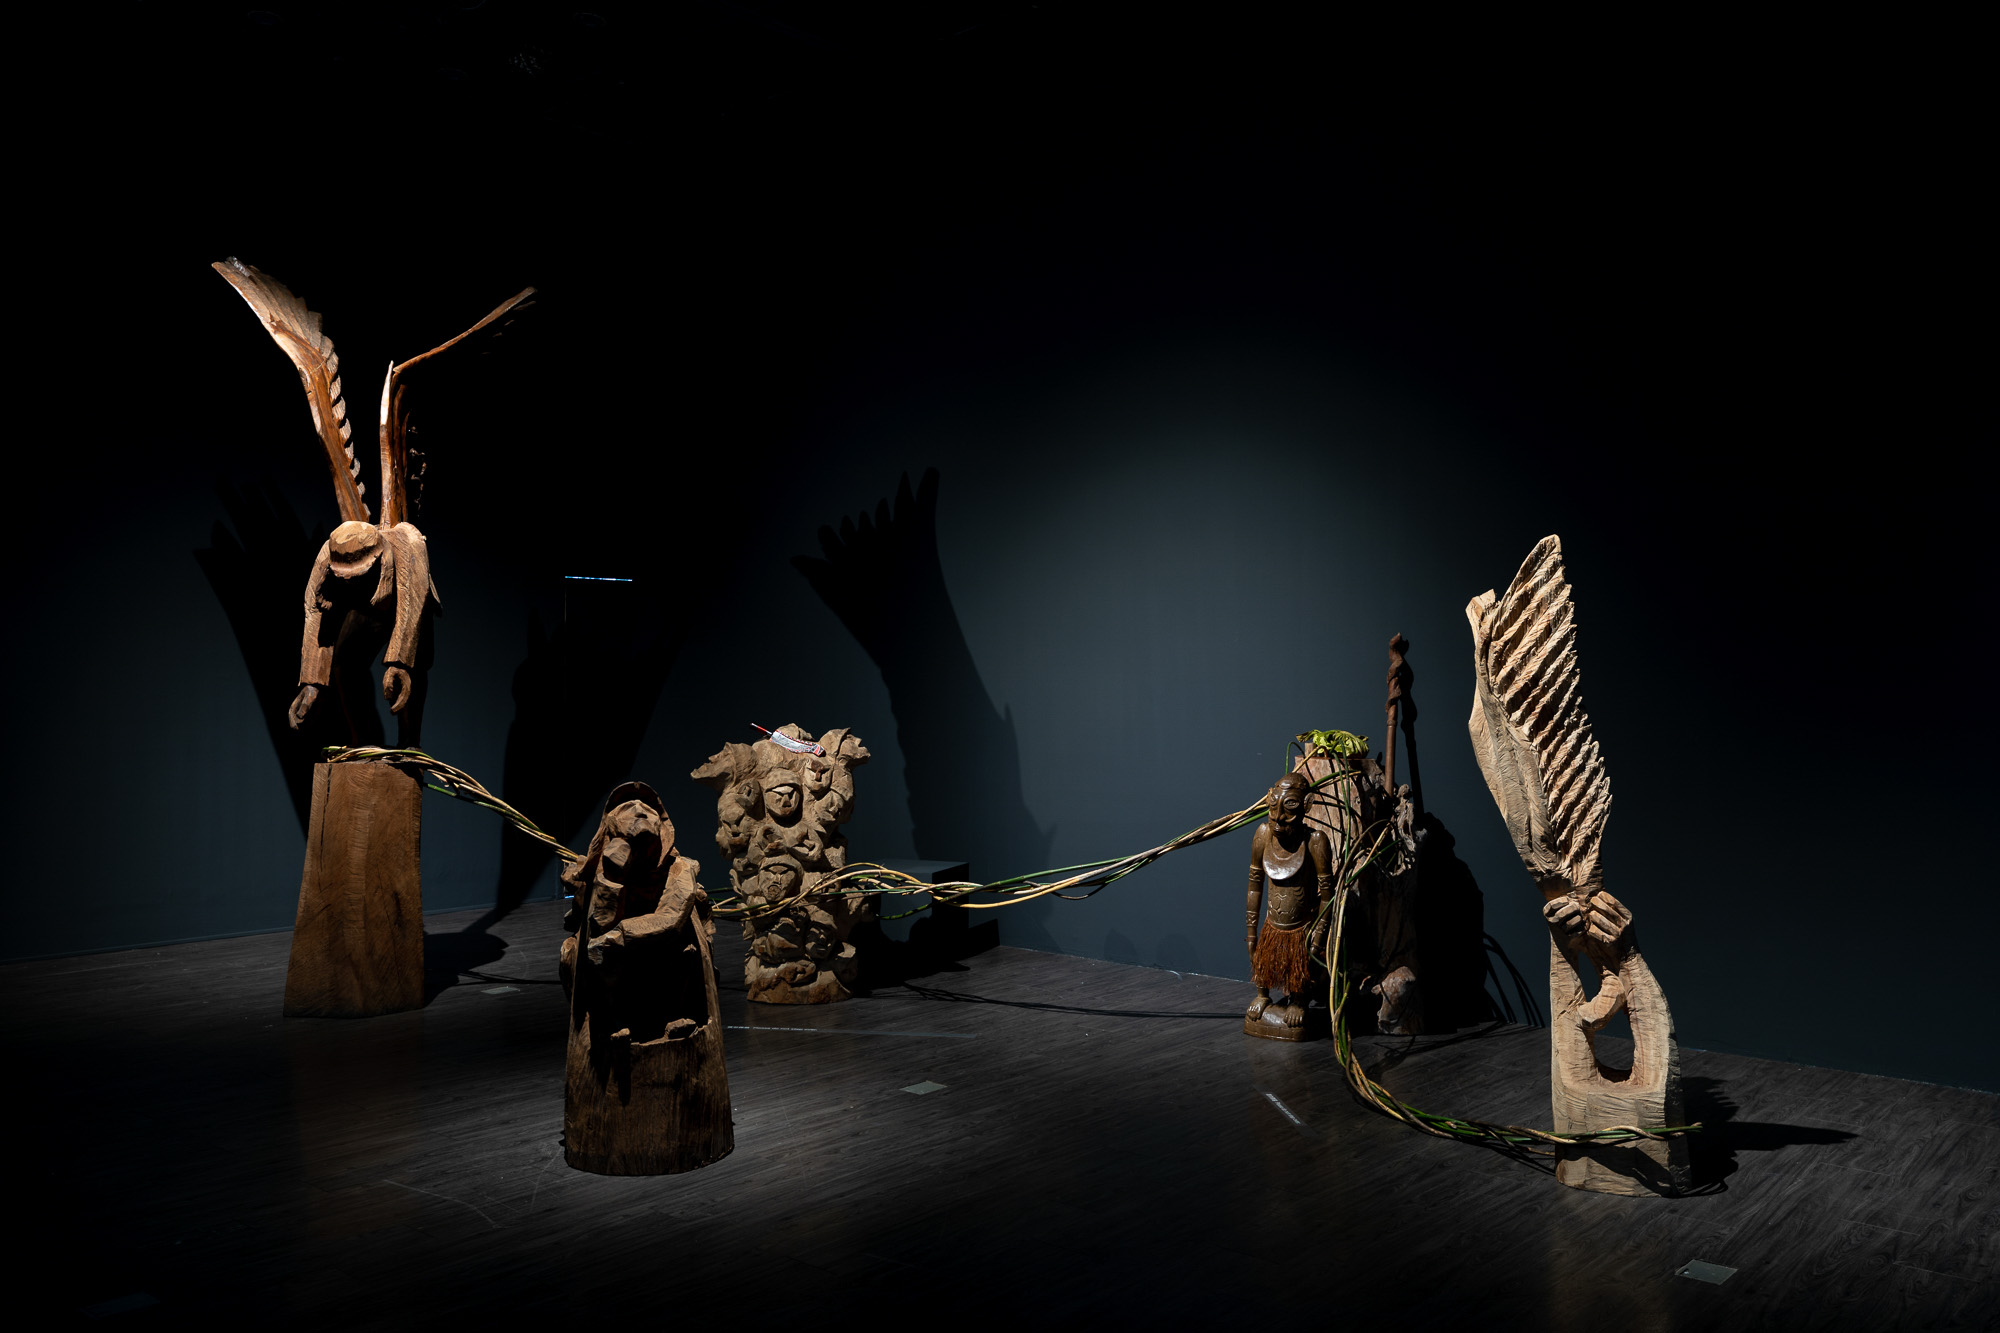 Siki Sufin, 'Masalauway', 2019, wood, objects, dimensions variable. Image courtesy of MOCA Taipei.